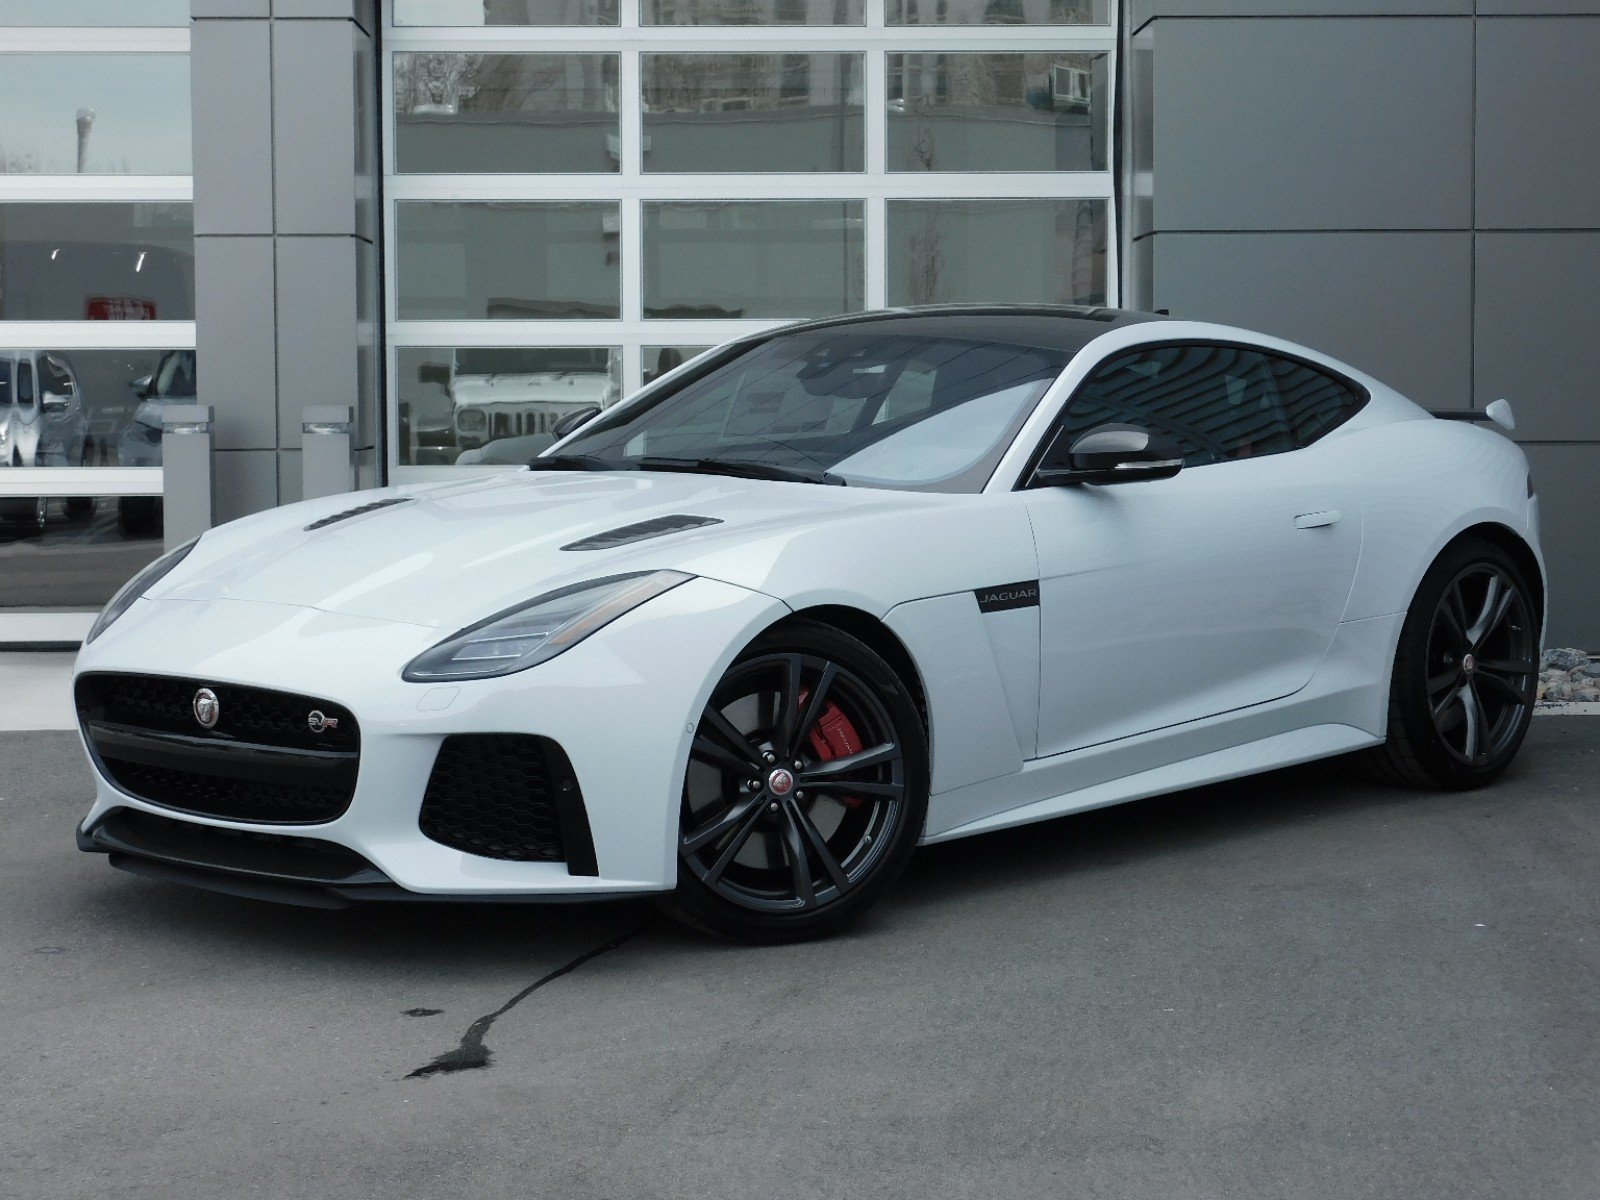 New 2020 Jaguar F Type Svr Coupe In Salt Lake City 1j0003 Jaguar